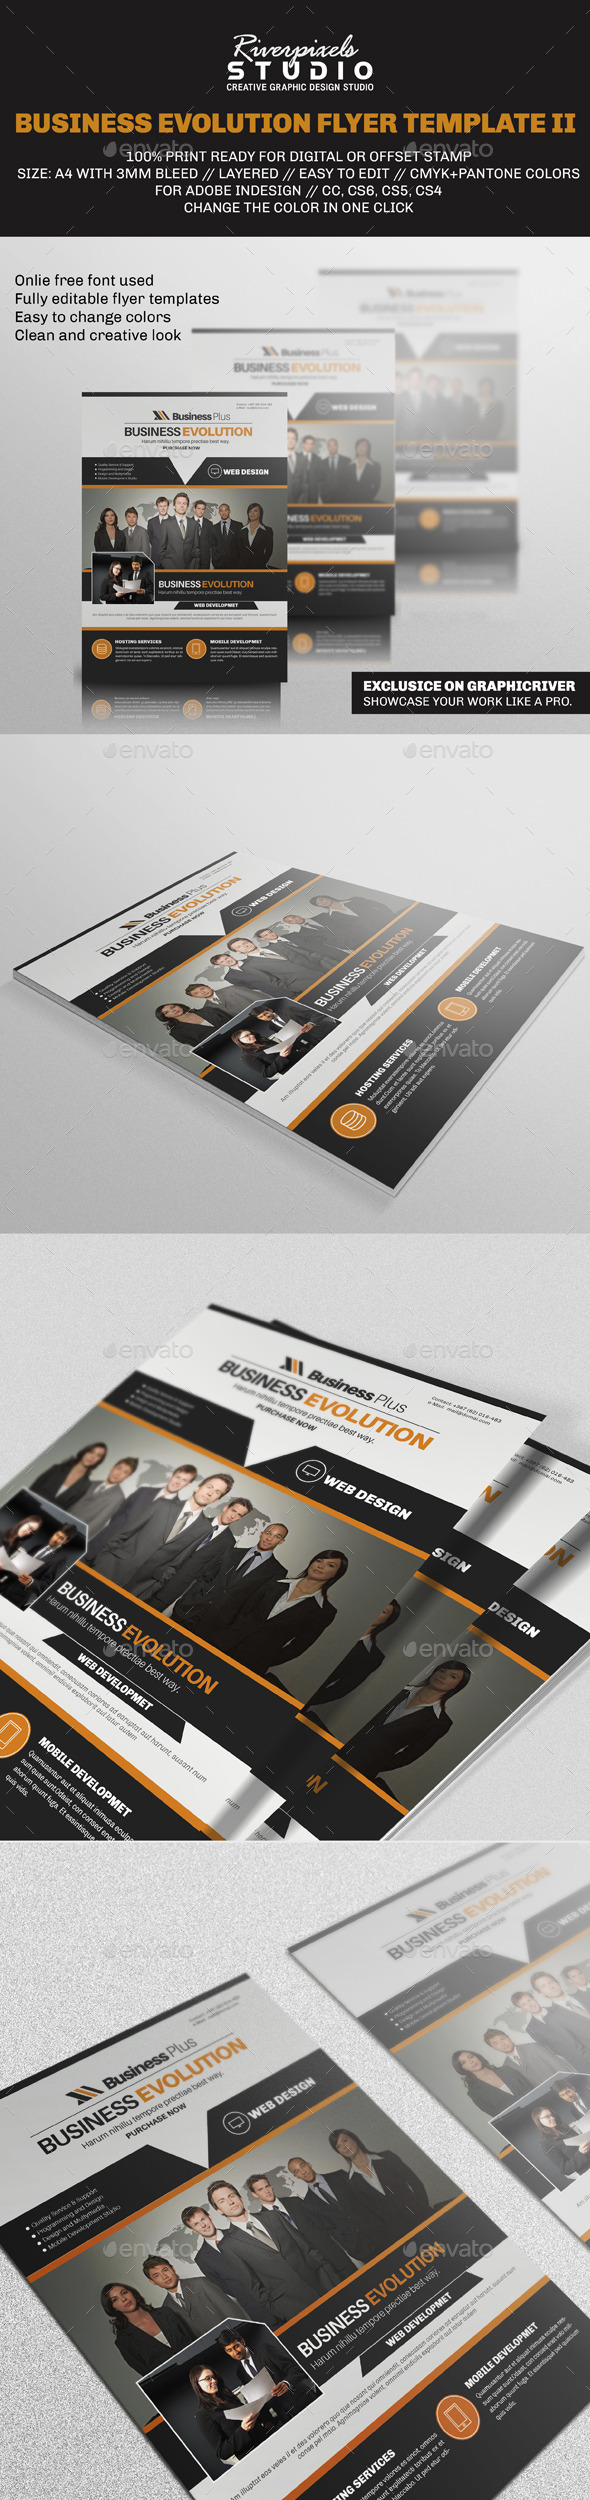 Business Evolution Flyer Template II - Corporate Flyers